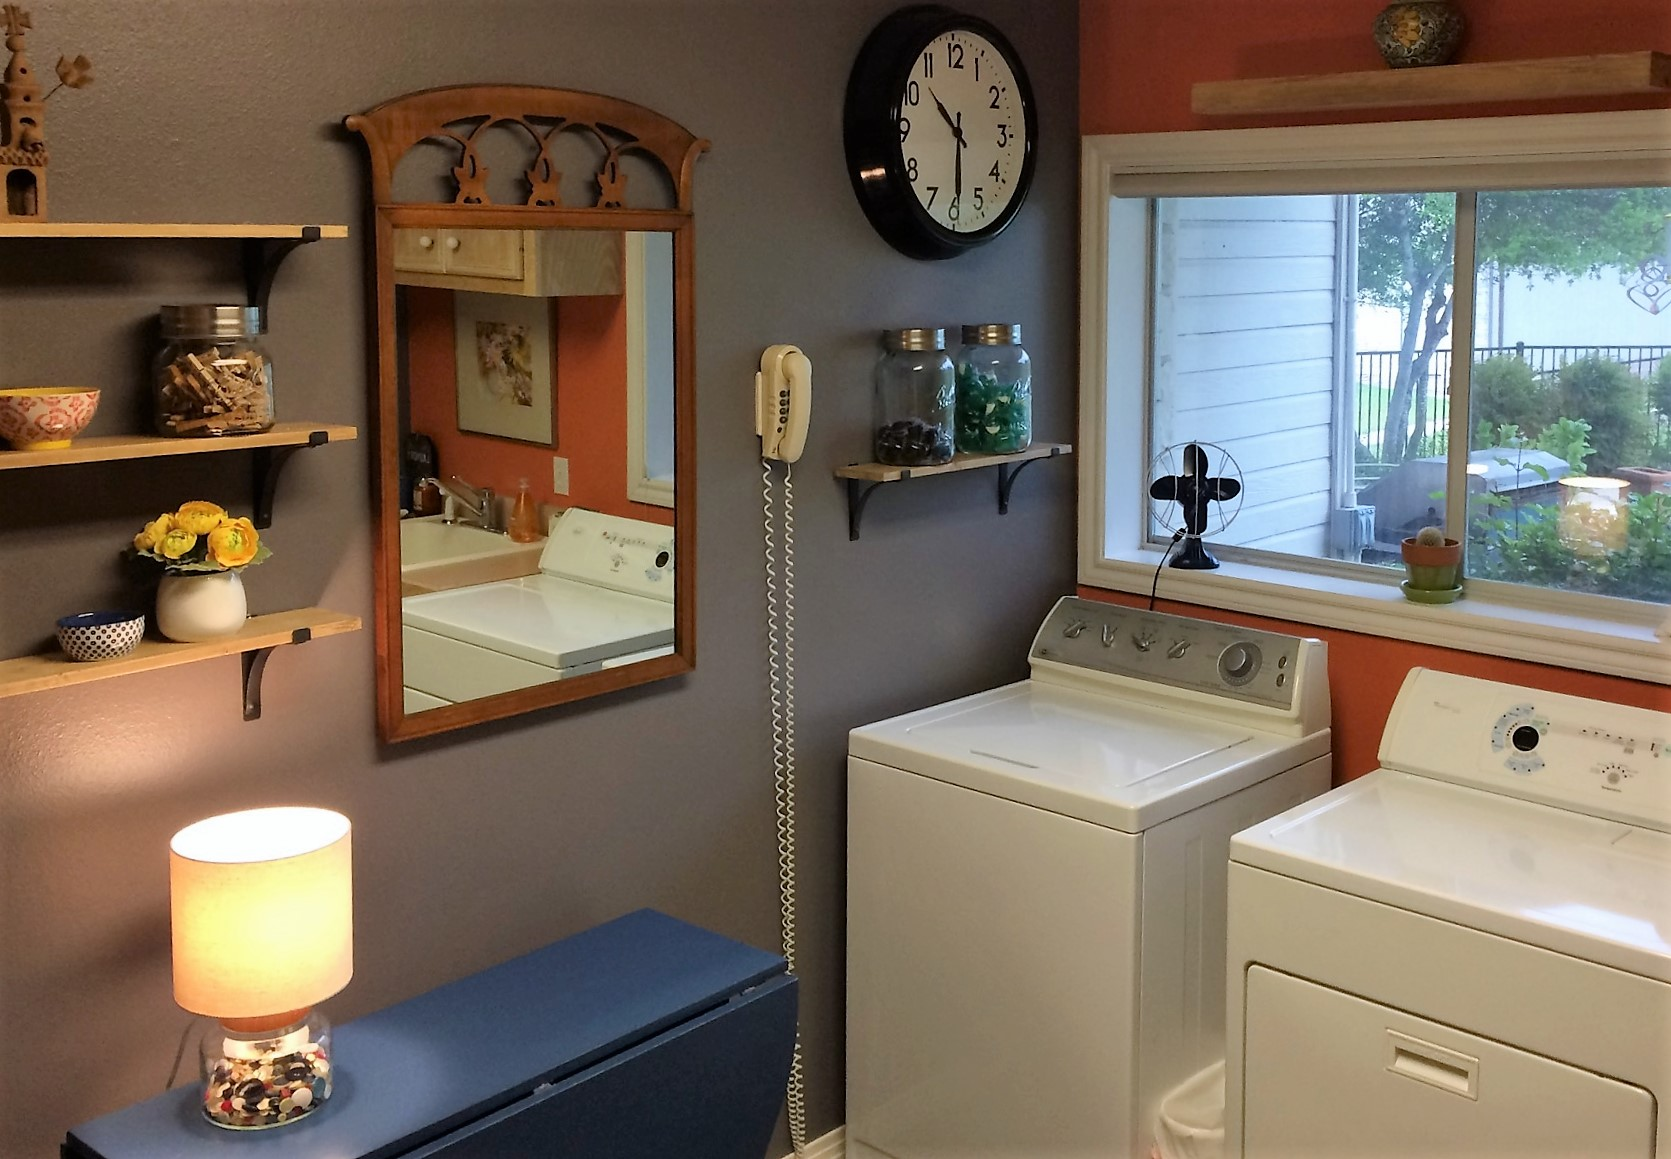 Easy, Breezy Laundry Room Project  Home With A Twist. Small Basement Bathrooms. Cost To Build A Bathroom In Basement. Cheap Basement Ideas. Photos Of Finished Basements. Basement Theater Ideas. Waterproof Basement Cost. Concrete For Basement Floor. Basement Ceiling Insulation Pros And Cons